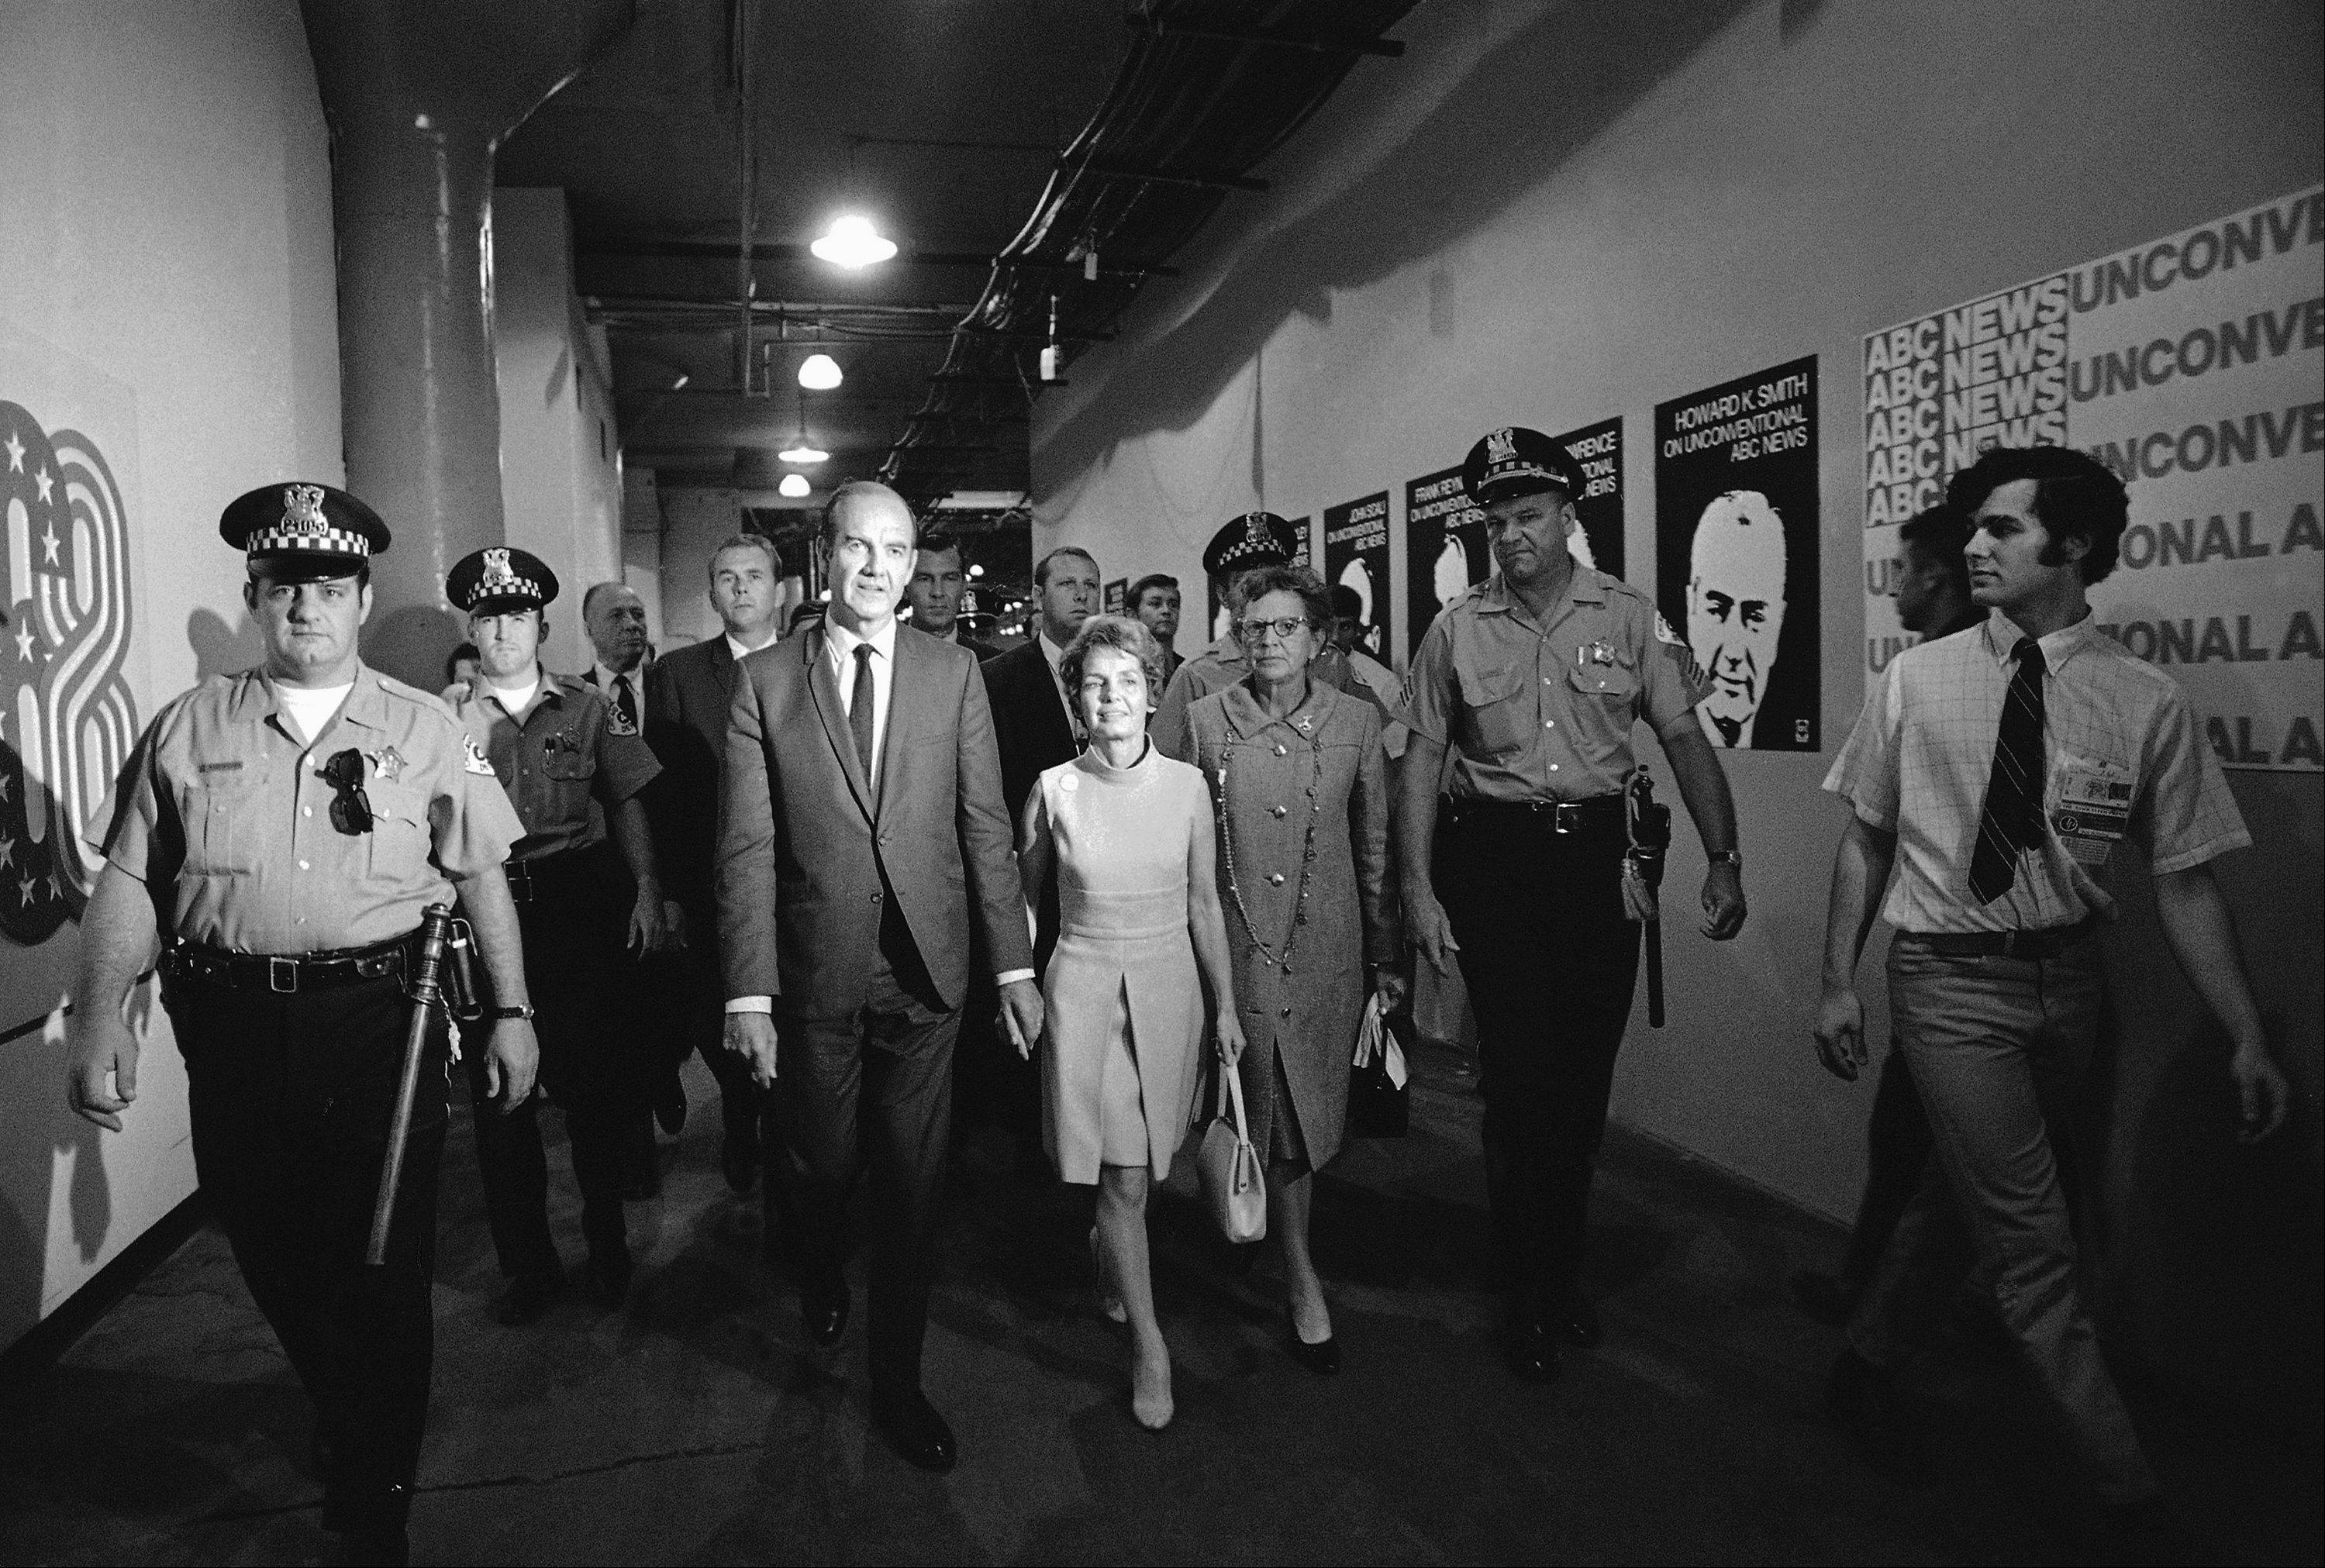 A phalanx of policemen and Secret Service agents accompanies Sen. George McGovern and his wife as they leave International Amphitheatre in Chicago, August 25, 1968, following an appearance by the candidate for the Democratic presidential nomination on a television show.